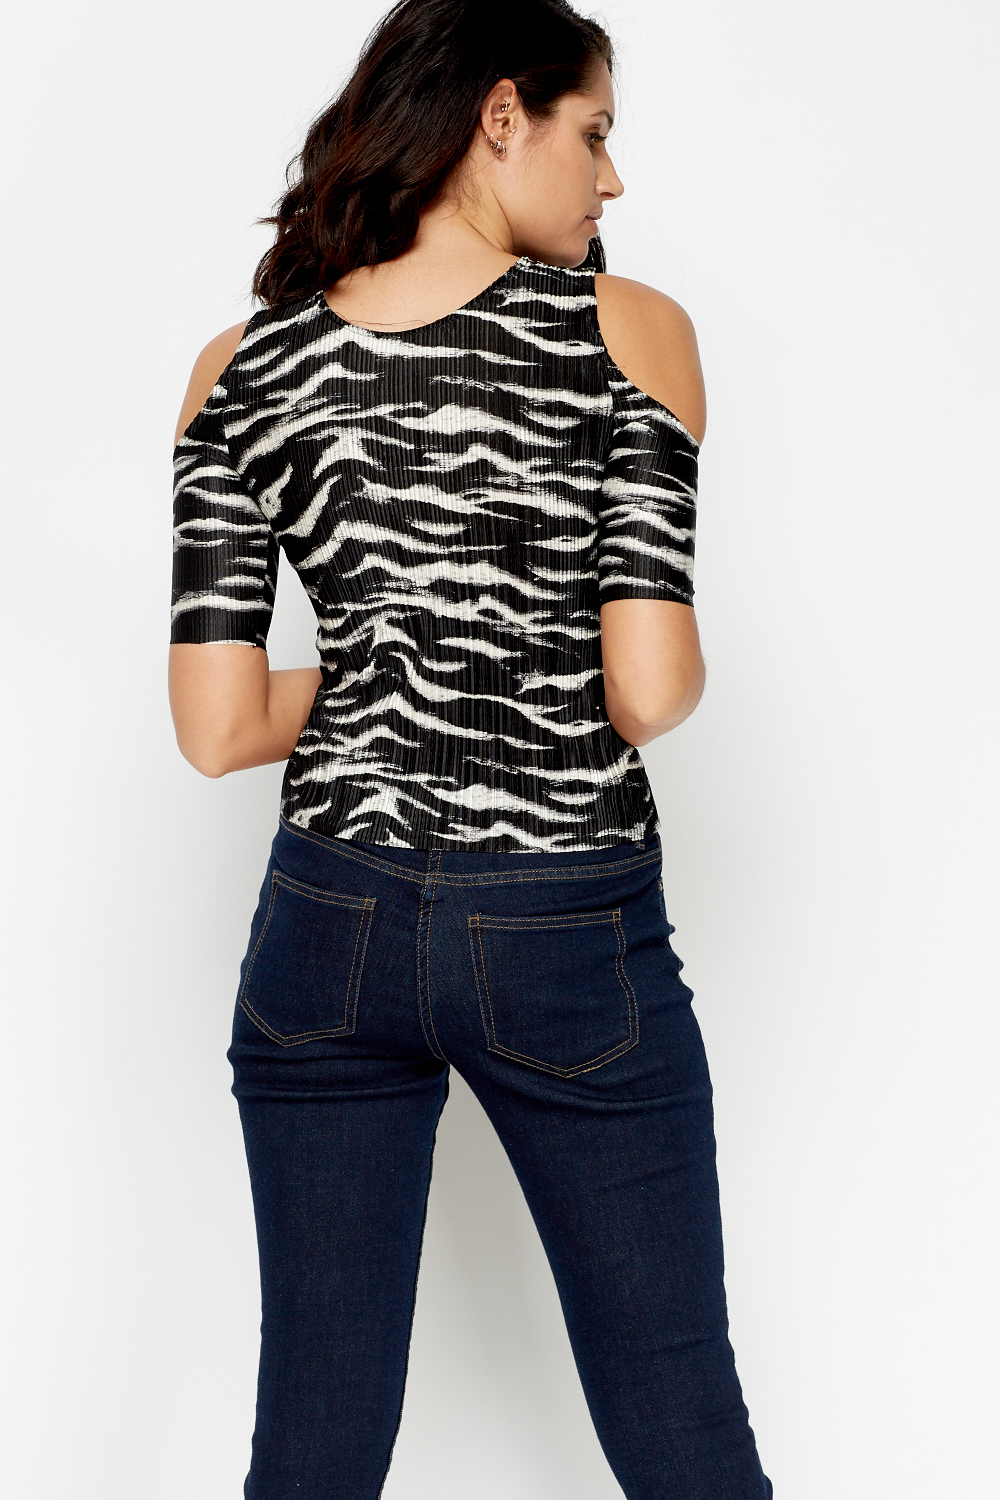 You searched for: zebra print tops! Etsy is the home to thousands of handmade, vintage, and one-of-a-kind products and gifts related to your search. No matter what you're looking for or where you are in the world, our global marketplace of sellers can help you find unique and affordable options. Let's get started!